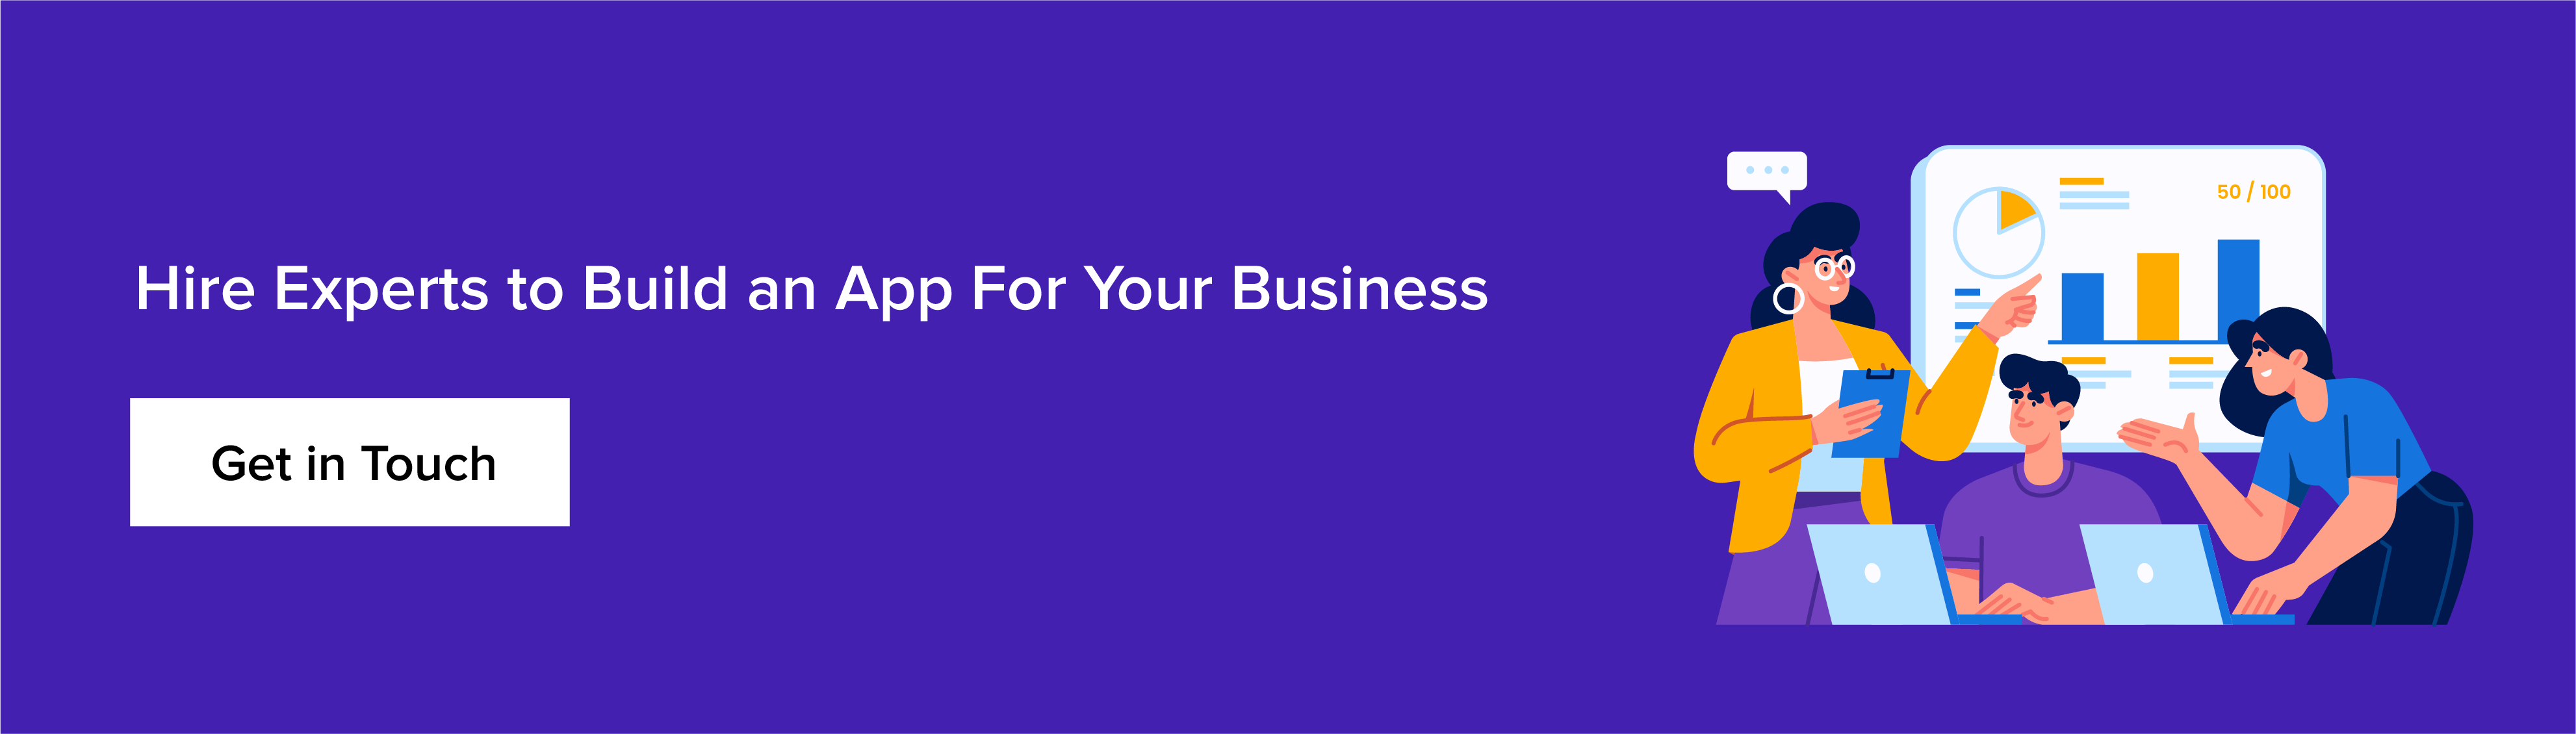 build an app for your business